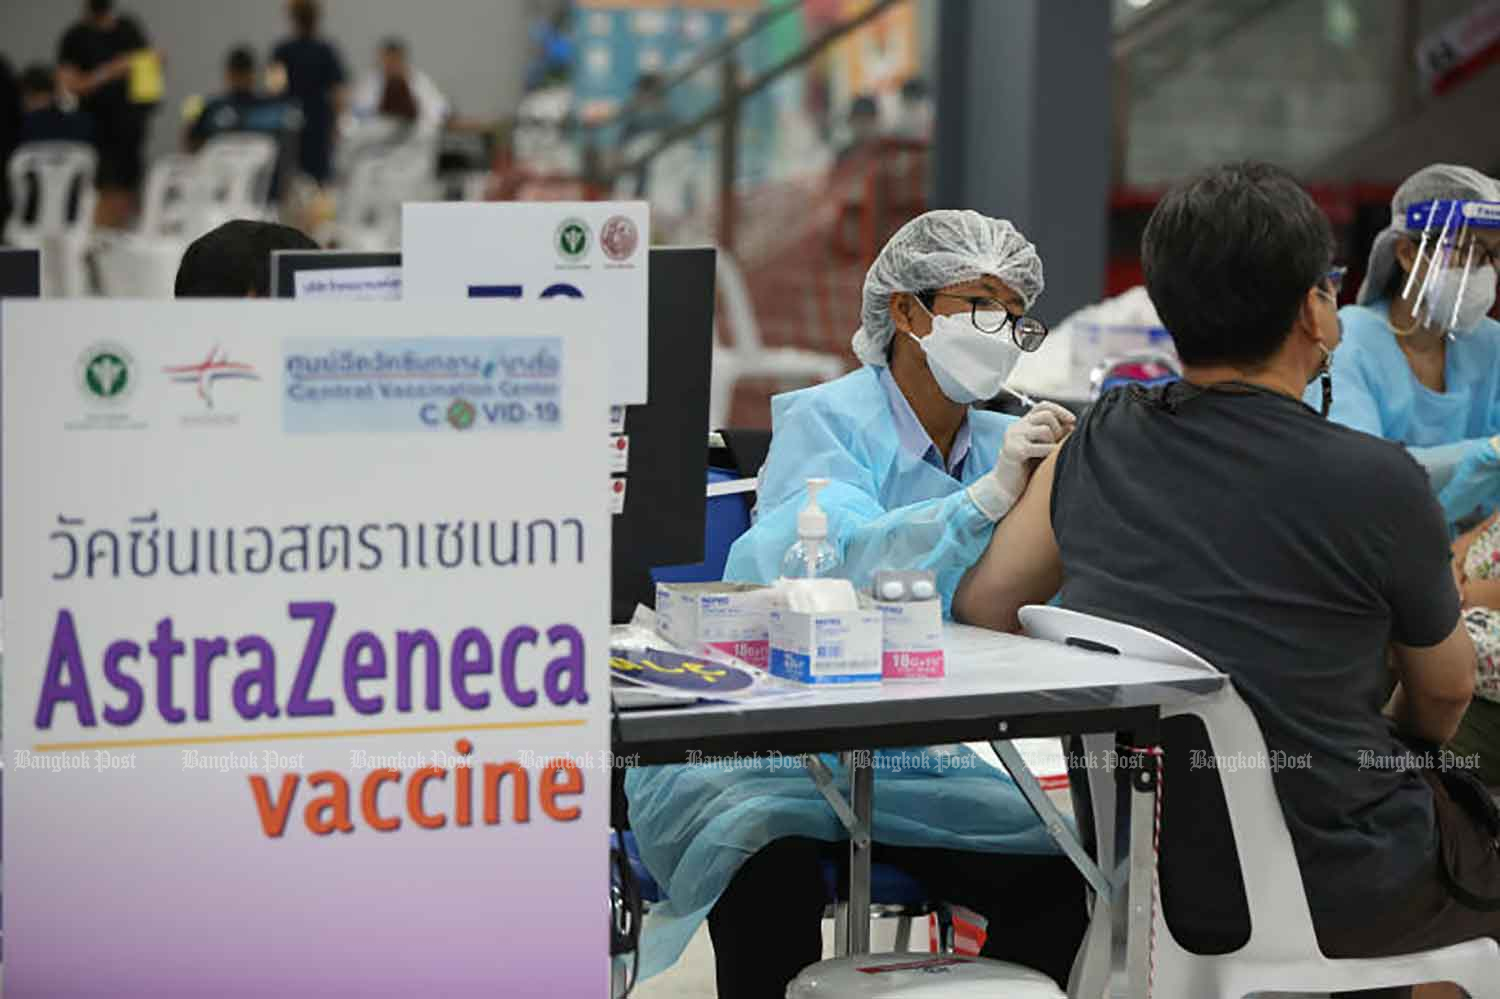 A health worker administers Covid-19 vaccine by AstraZeneca at the Bang Sue Grand Station in Bangkok last month. (Photo: Varuth Hirunyatheb)